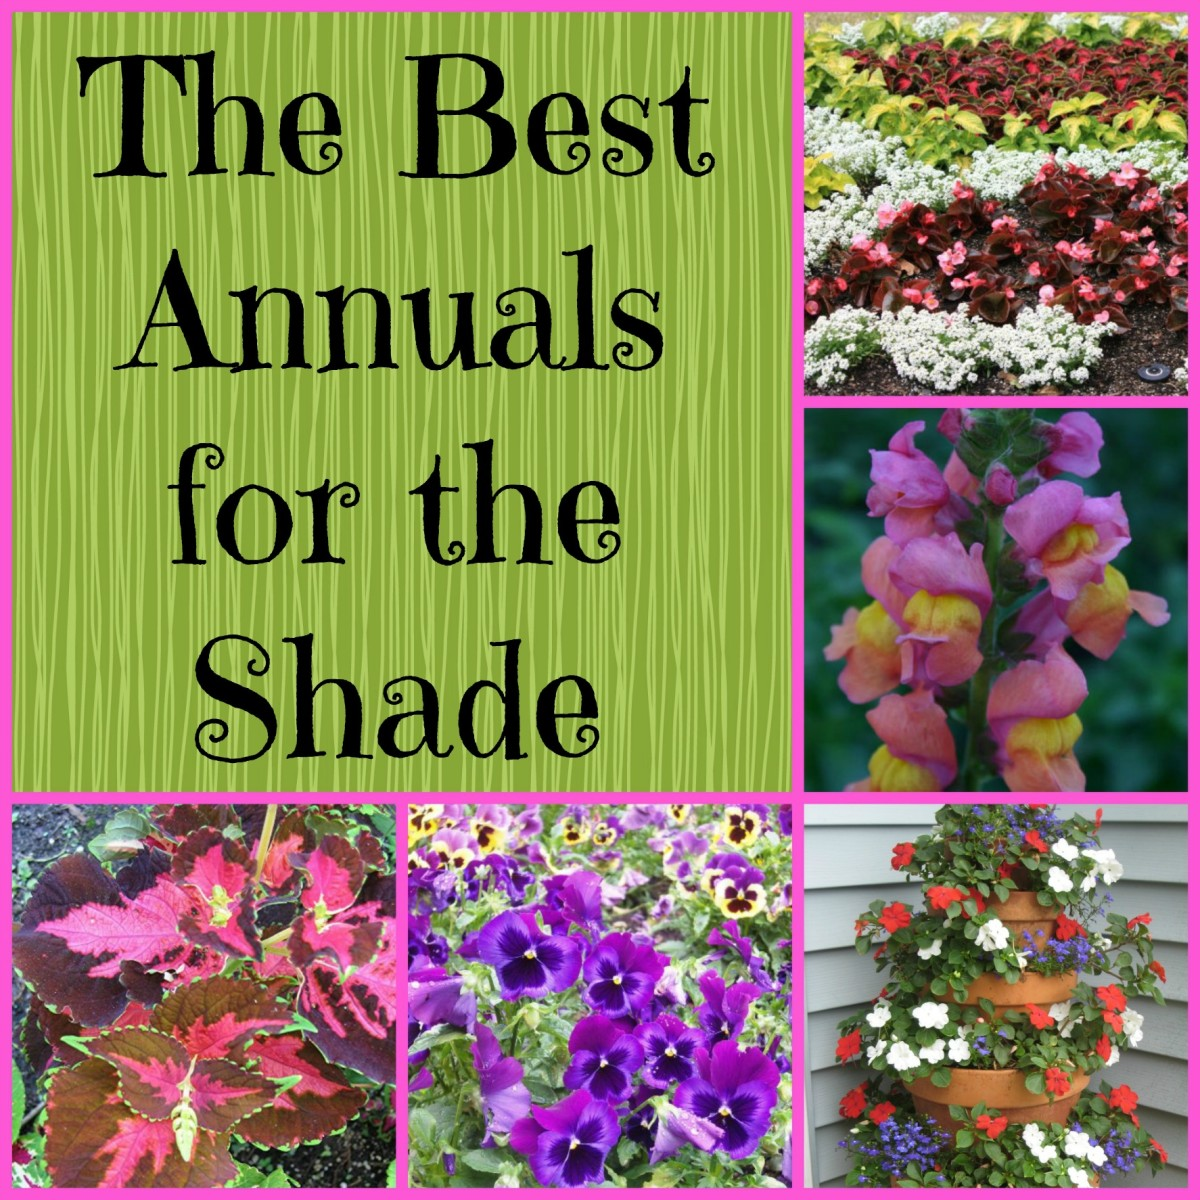 Gardening In The Shade 9 Annual Plants For Shady Areas Dengarden Home And Garden